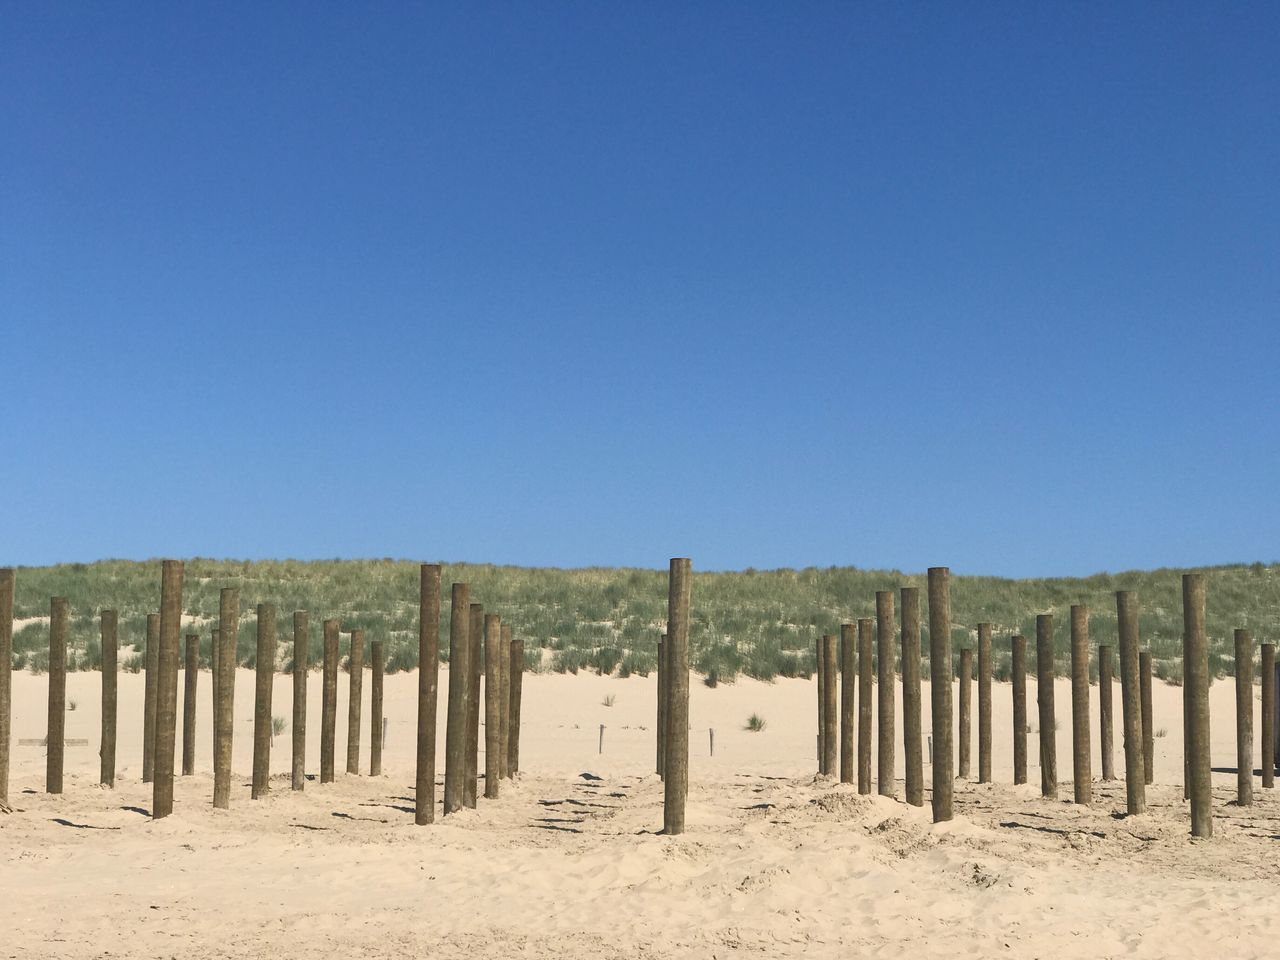 Wooden Posts On Field Against Clear Blue Sky